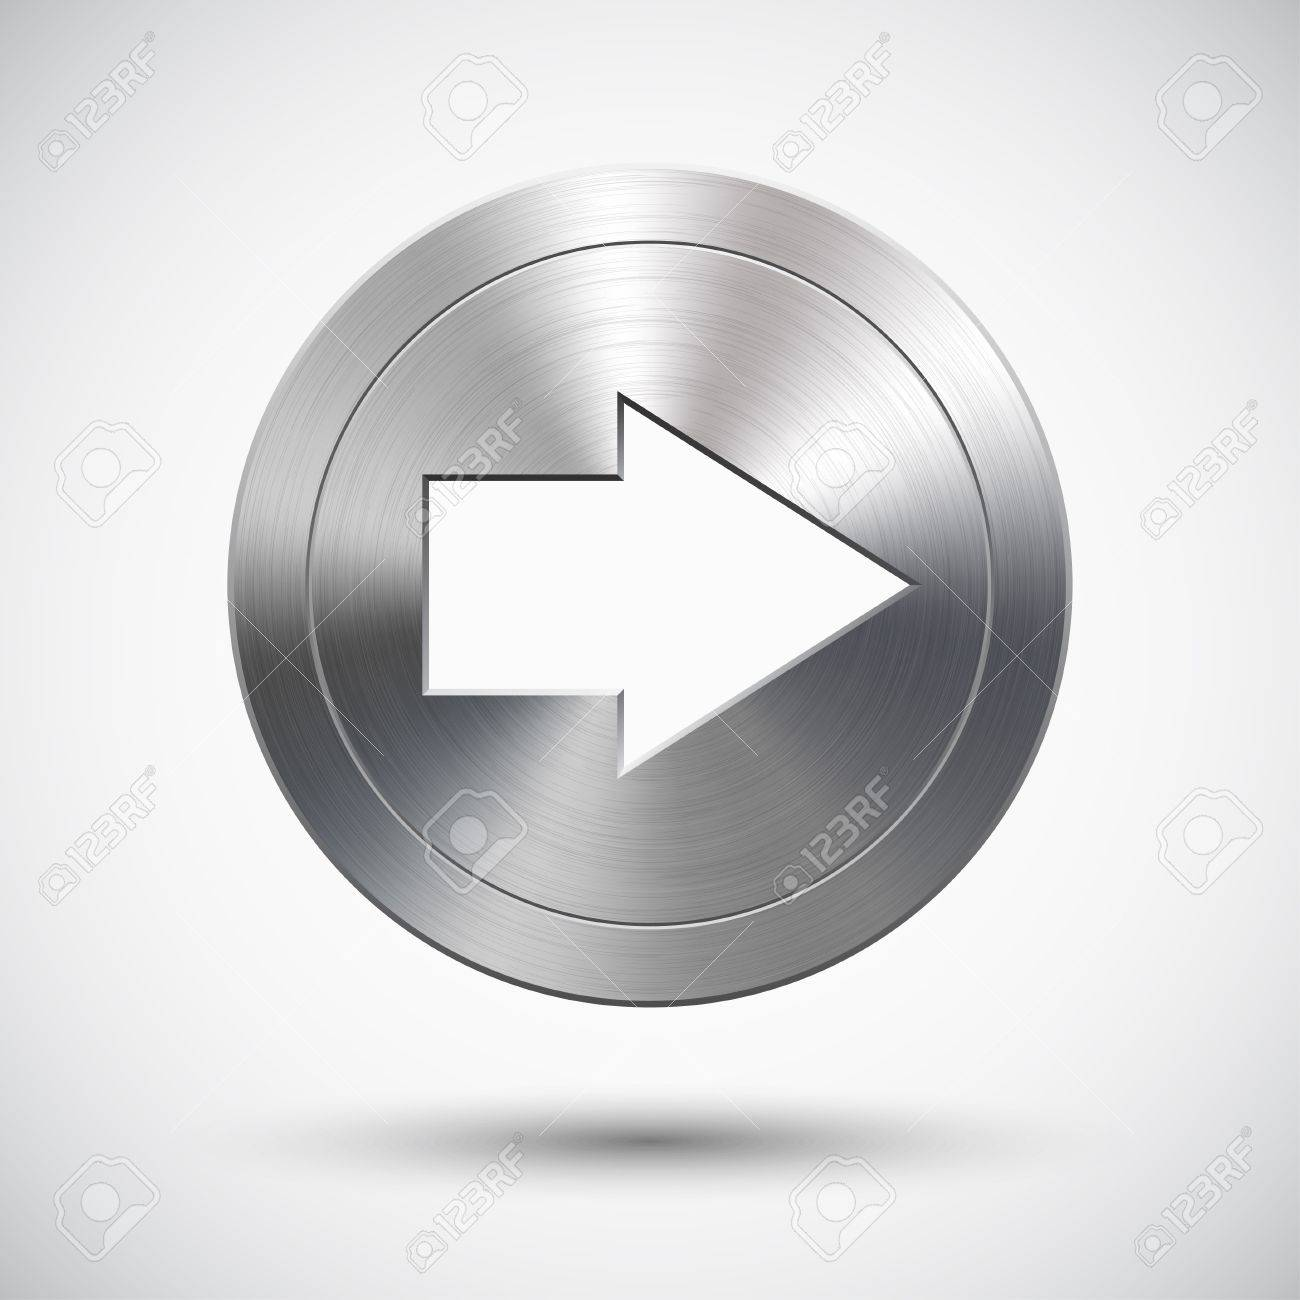 Button with metal (chrome) texture, right arrow sign, light background and shadow Stock Vector - 15085524